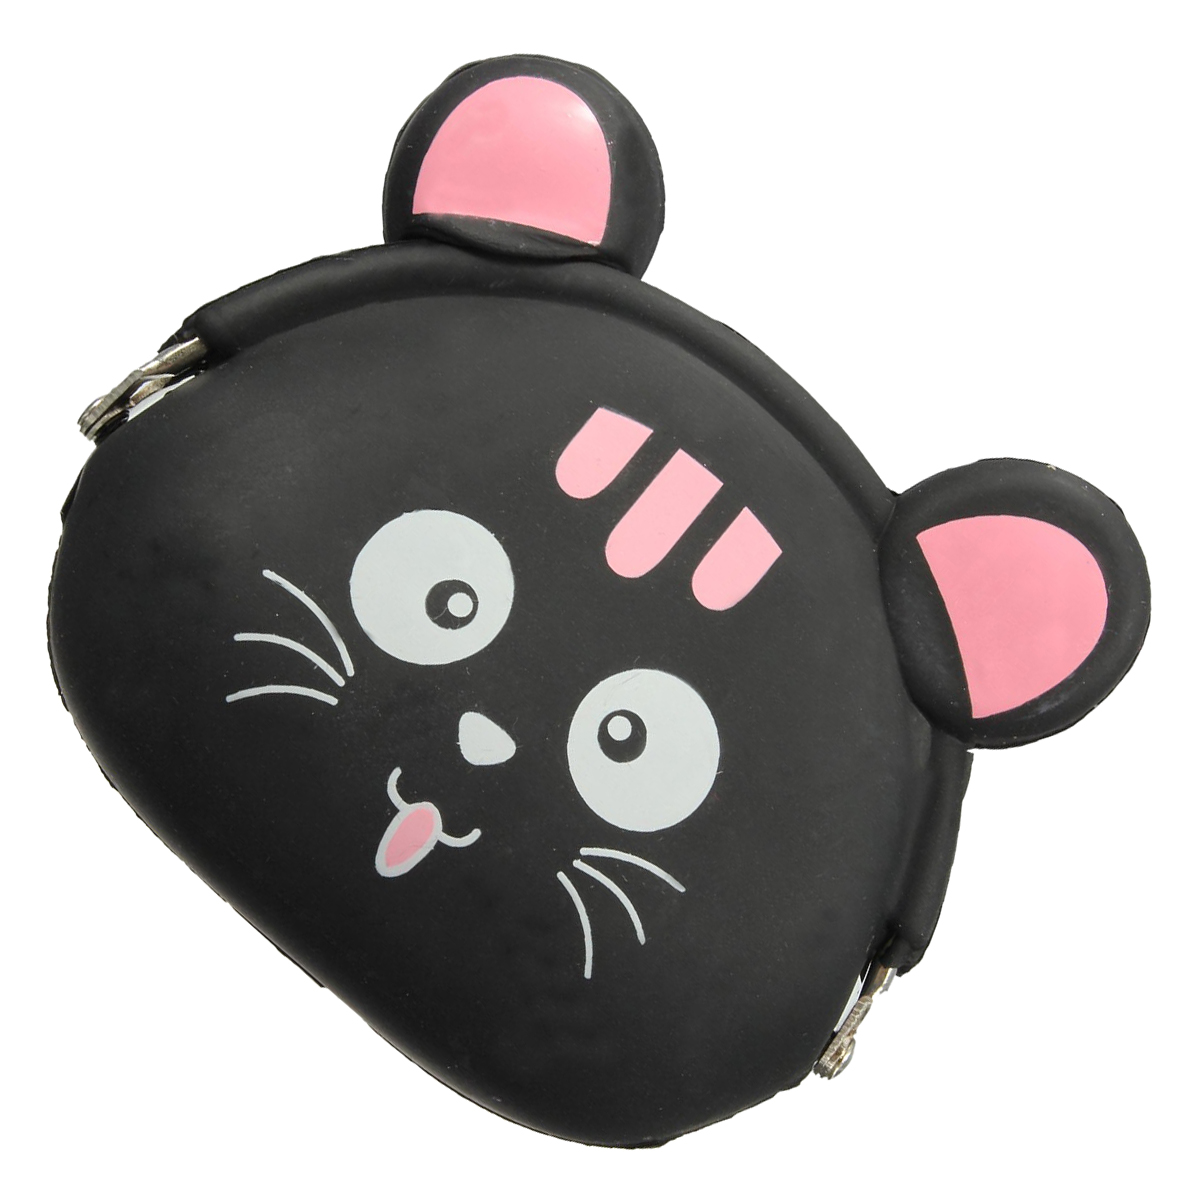 FGGS-Women Girls Wallet Kawaii Cute Cartoon Animal Silicone Jelly Coin Bag Purse Kids Gift Black cat new audio ip camera video surveillance security cctv camer network ir dome ip cam with external microphone